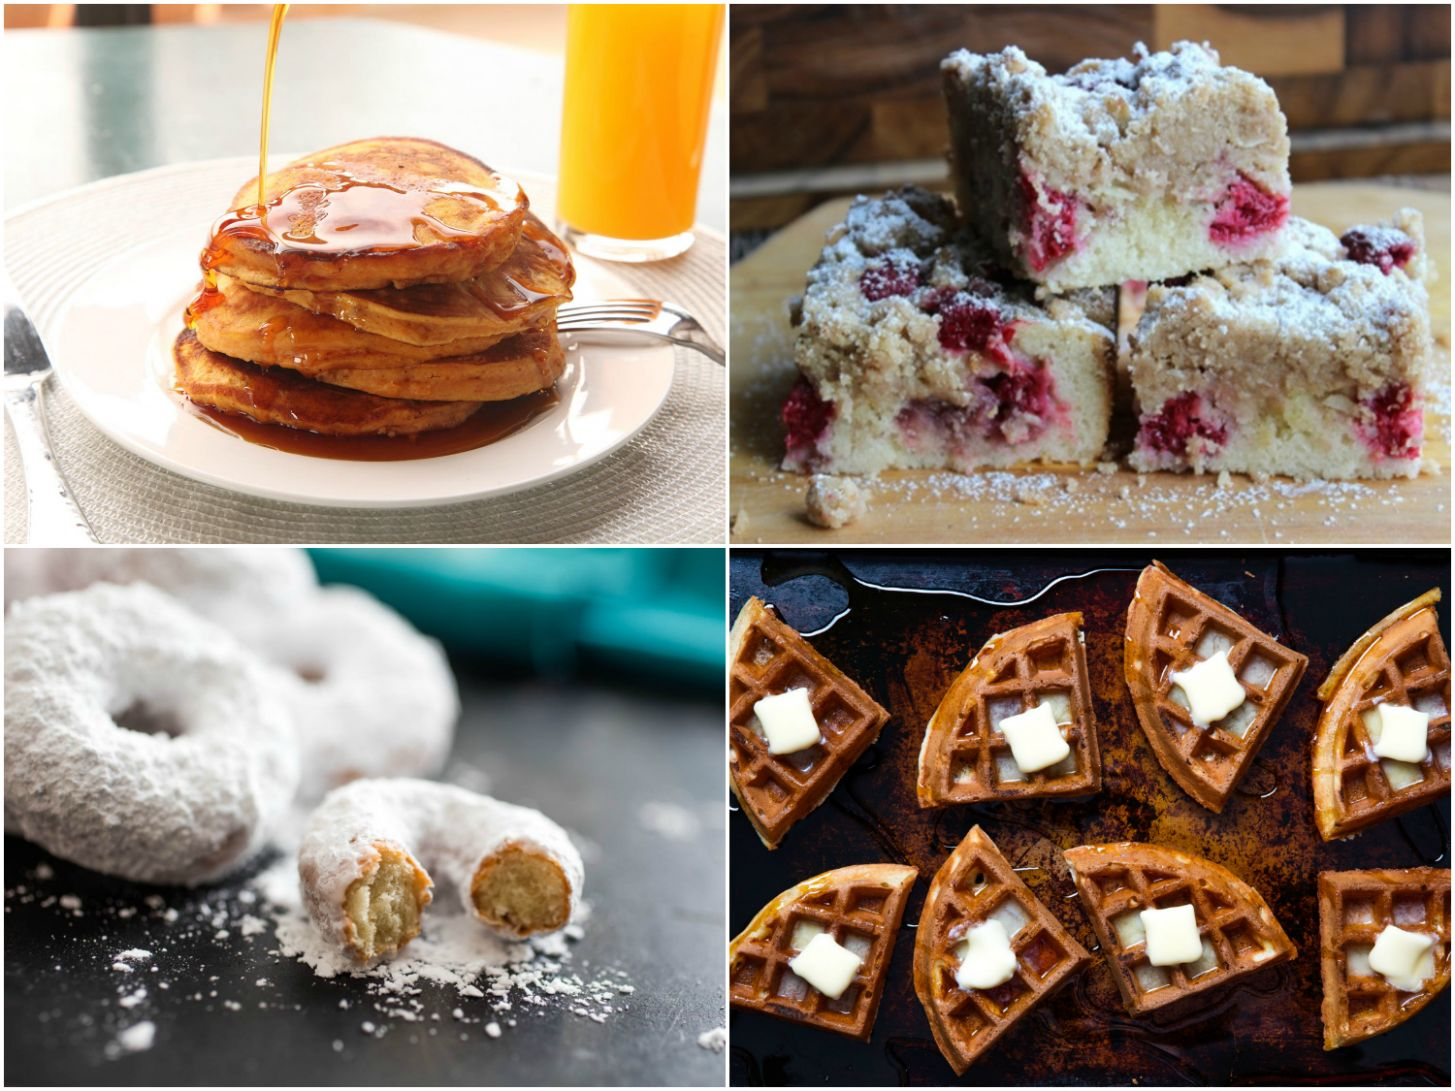 10 Pancakes, Waffles, Muffins, and More Sweet Breakfast Recipes ...